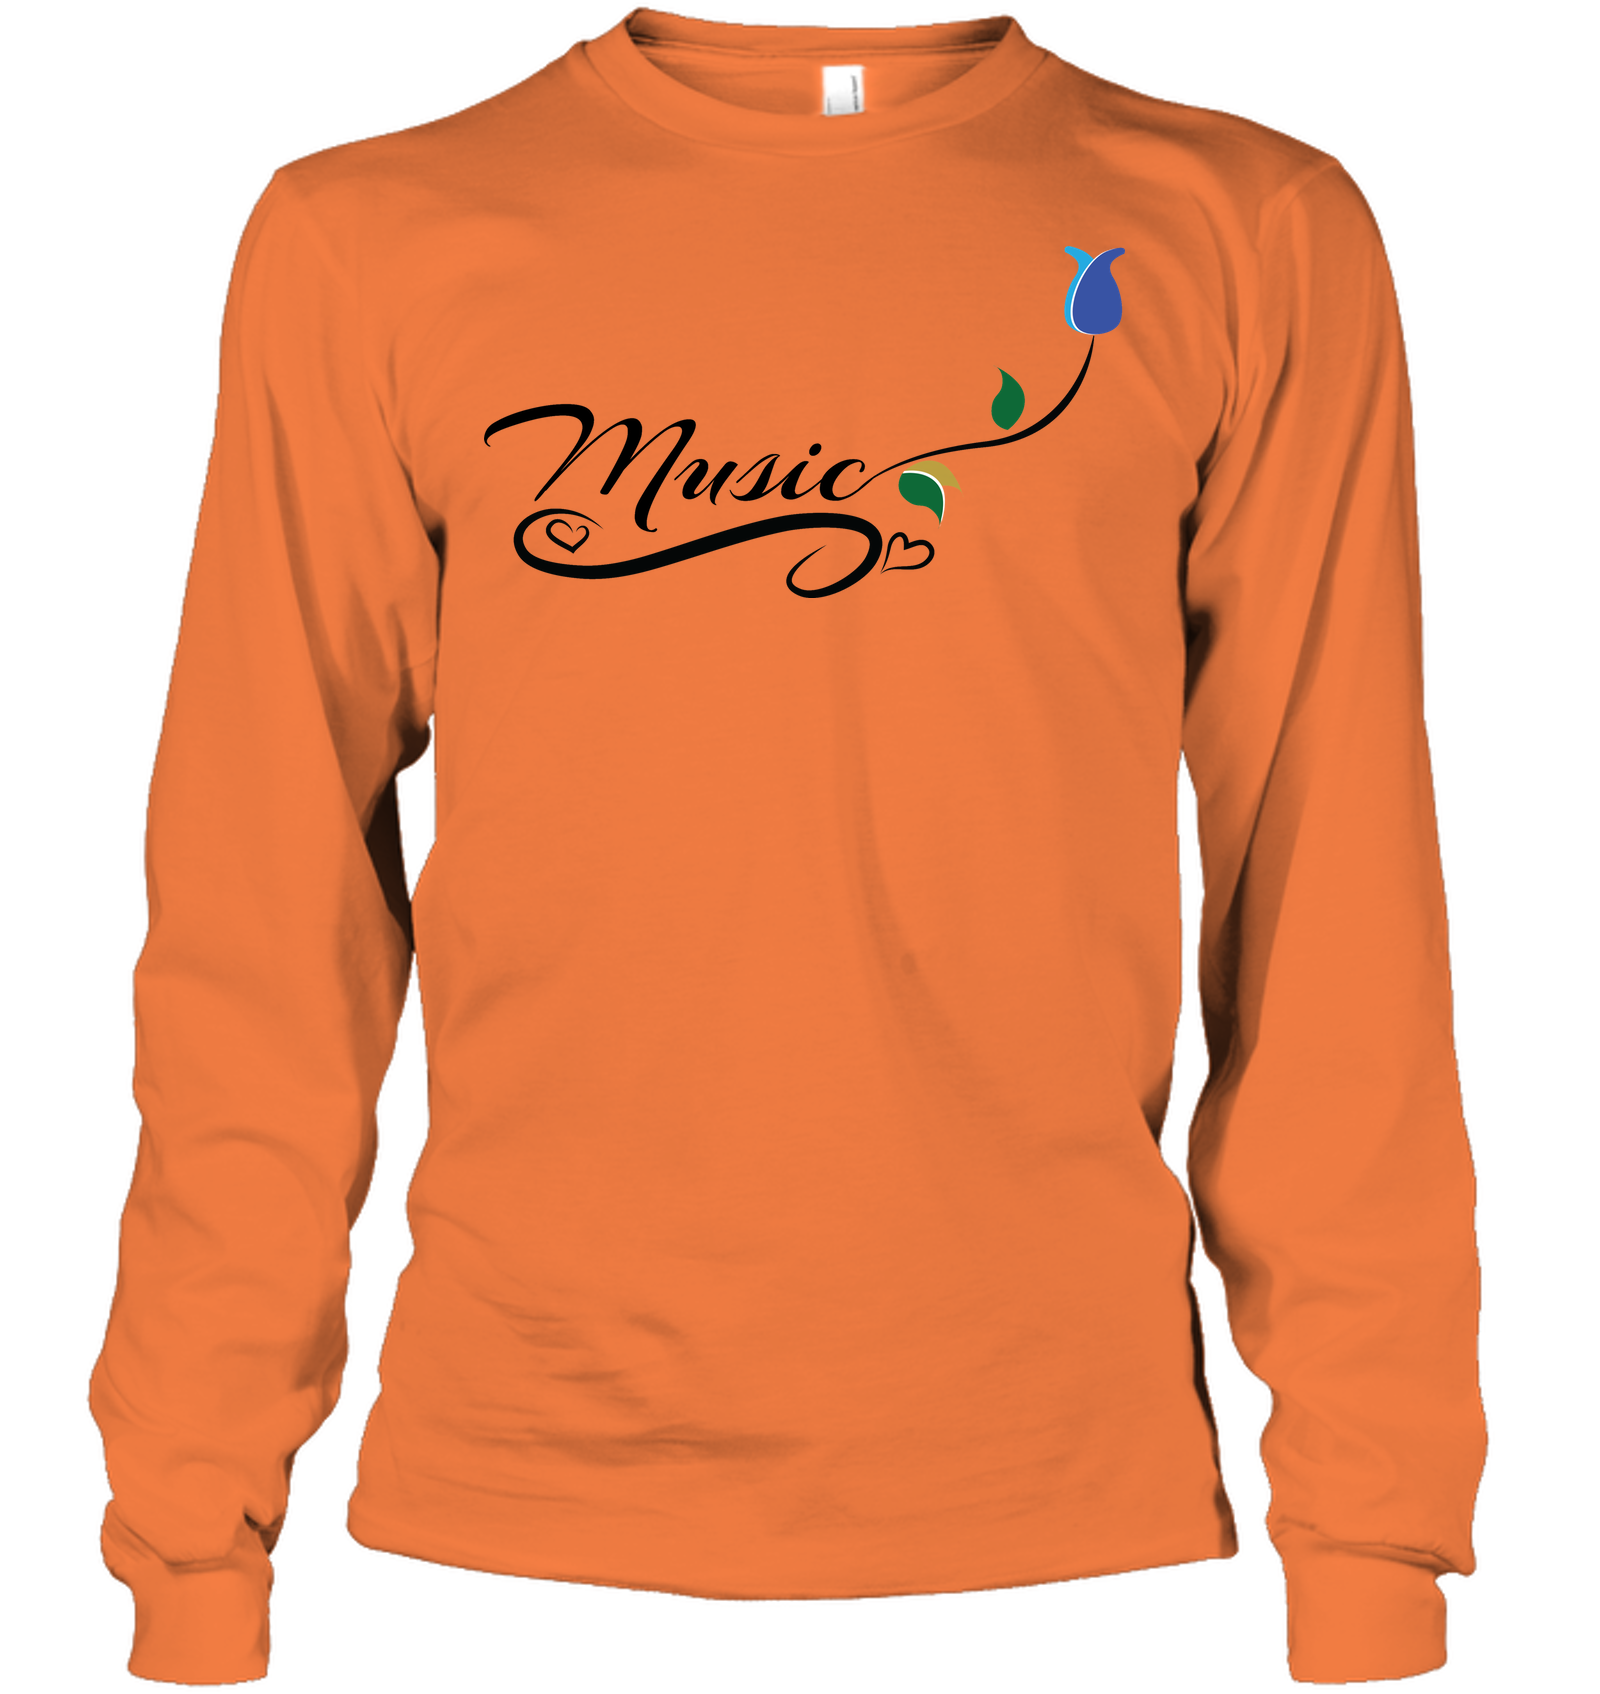 Music and Tulips - Gildan Adult Classic Long Sleeve T-Shirt